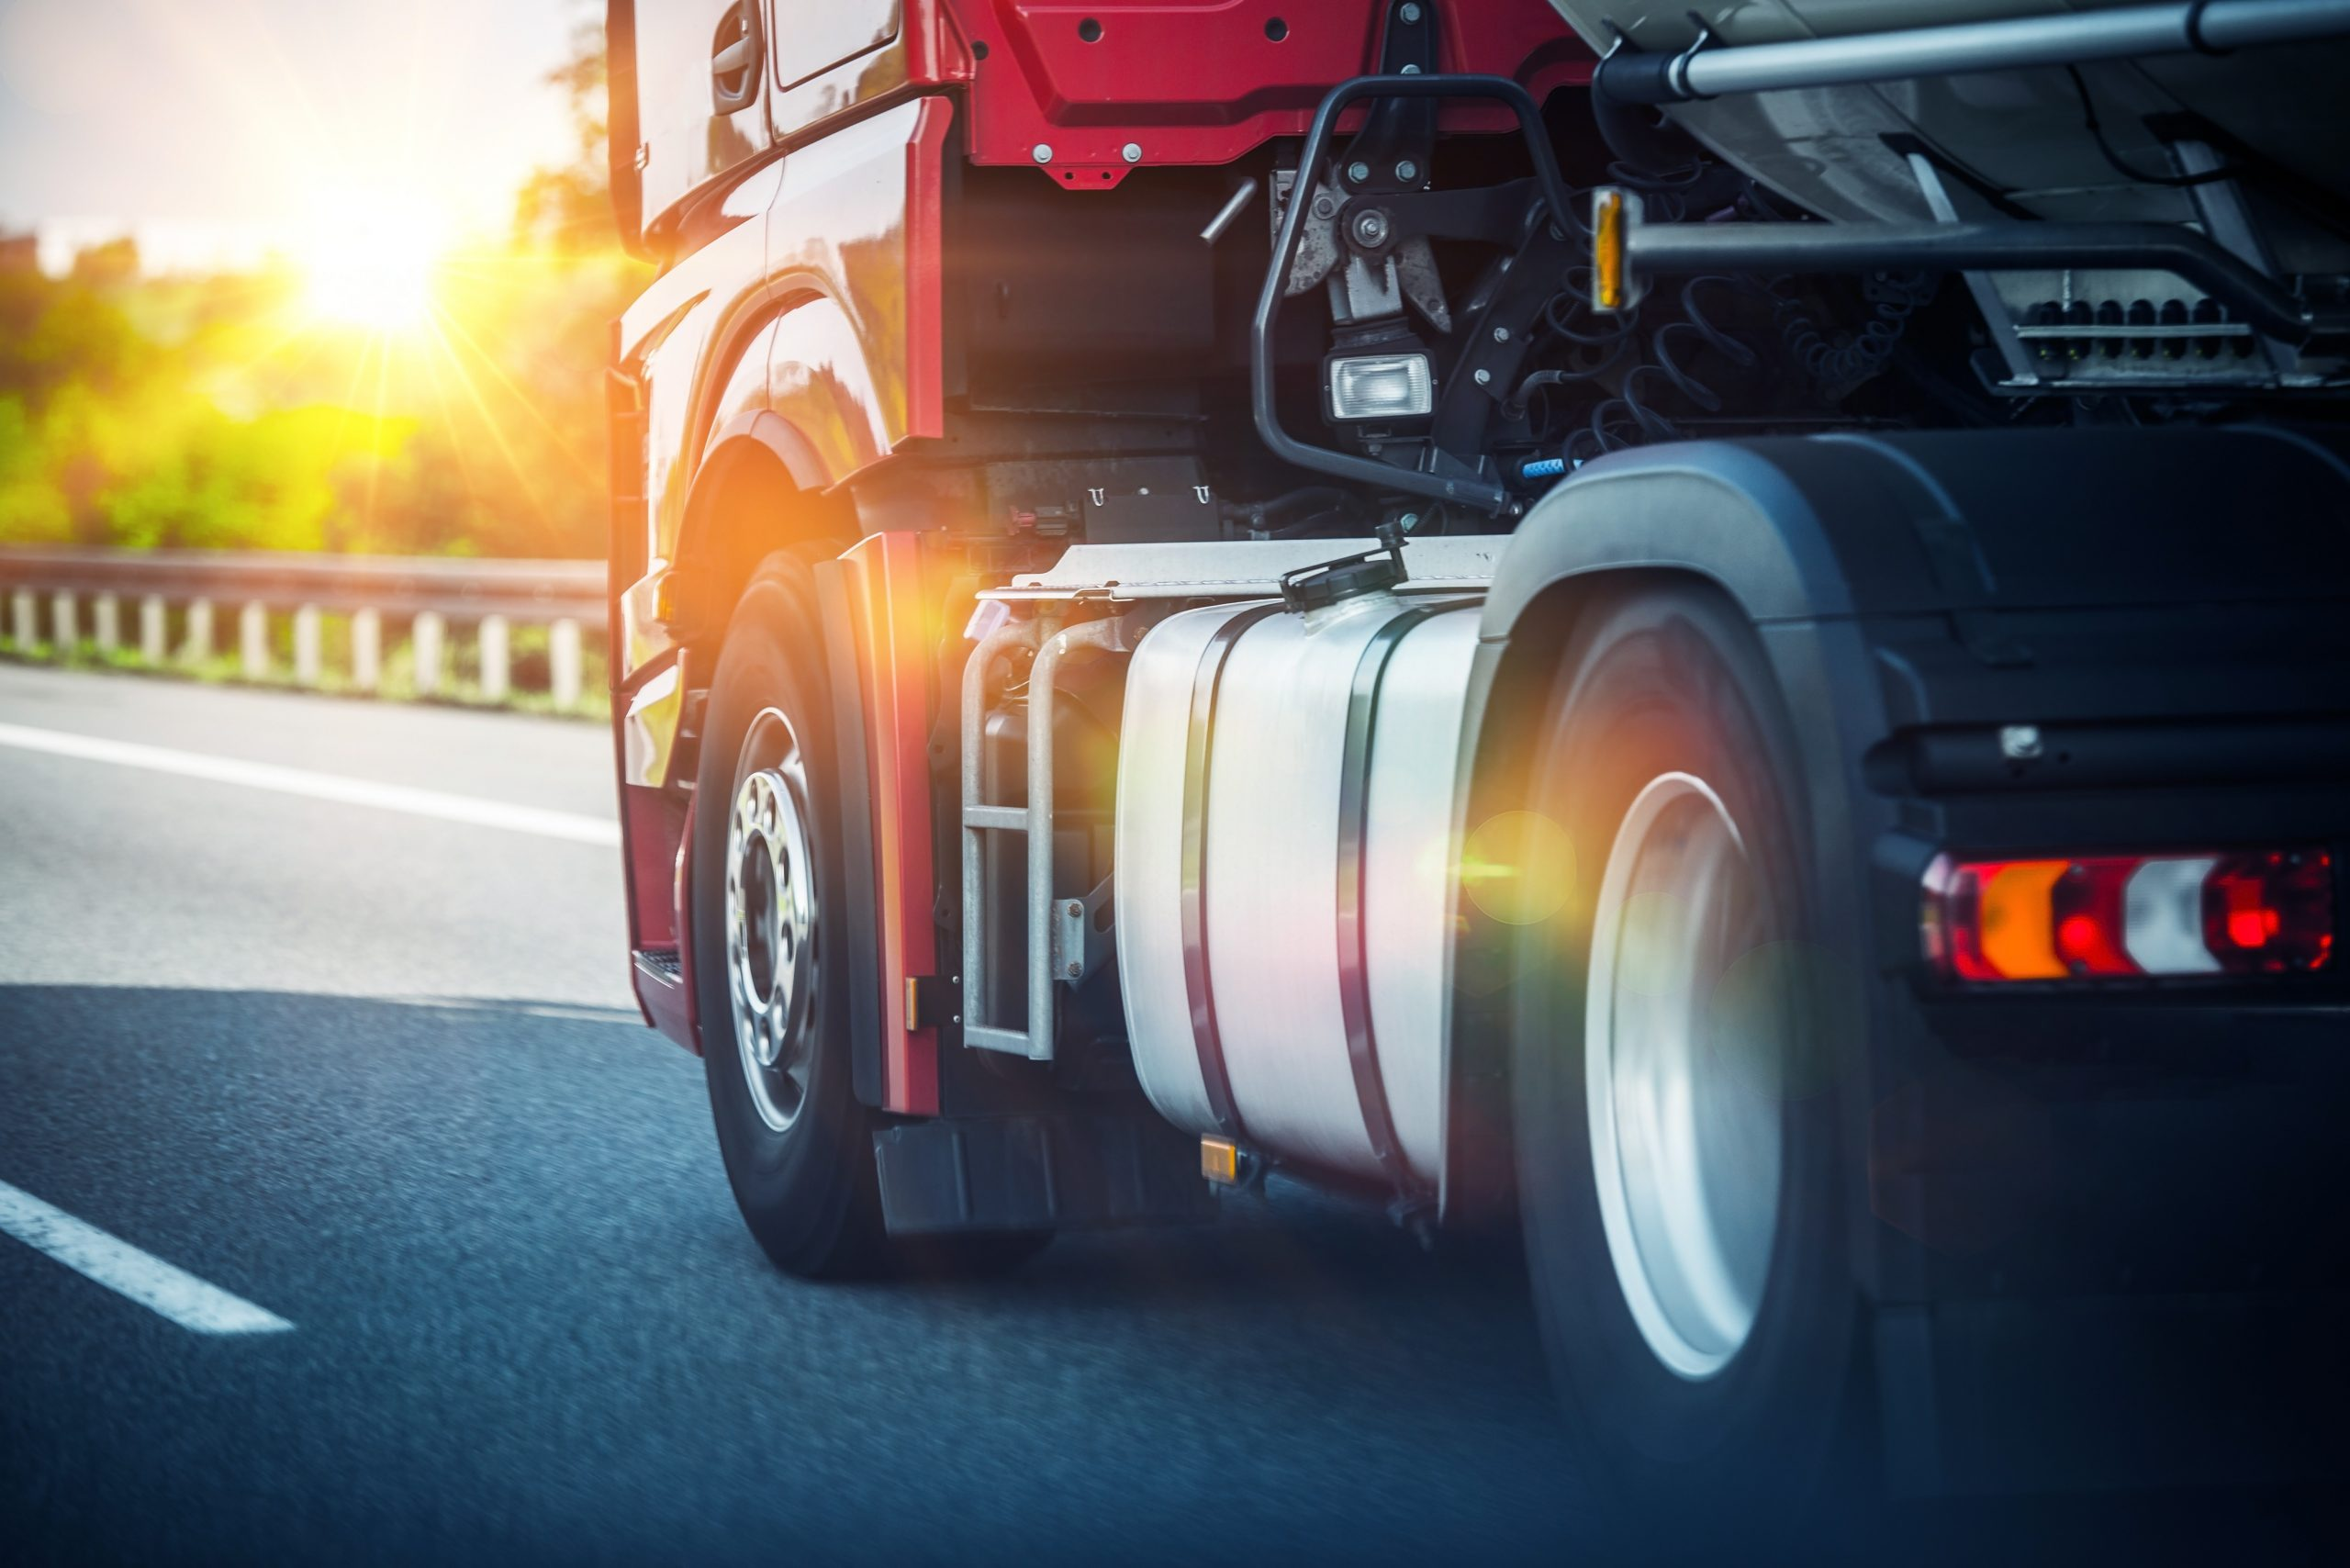 Picture of red commercial truck on highway